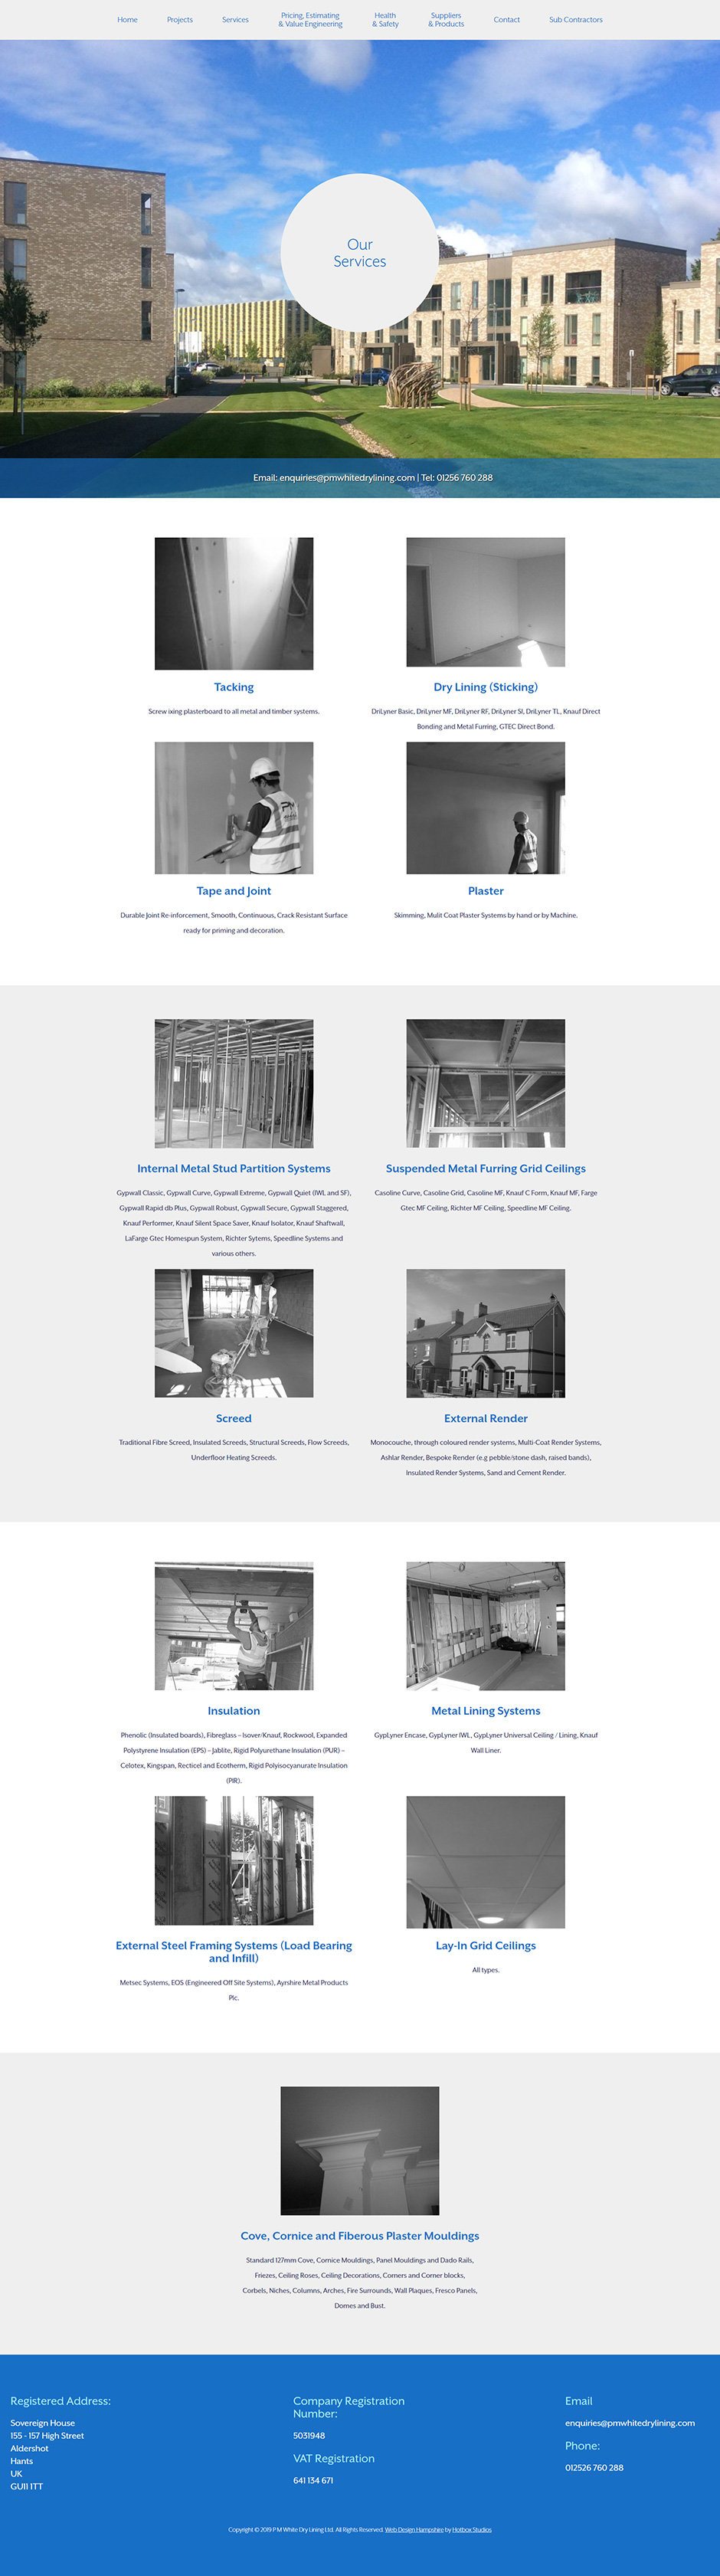 PM White Dry Lining Website Design and WordPress Development SP006 Services